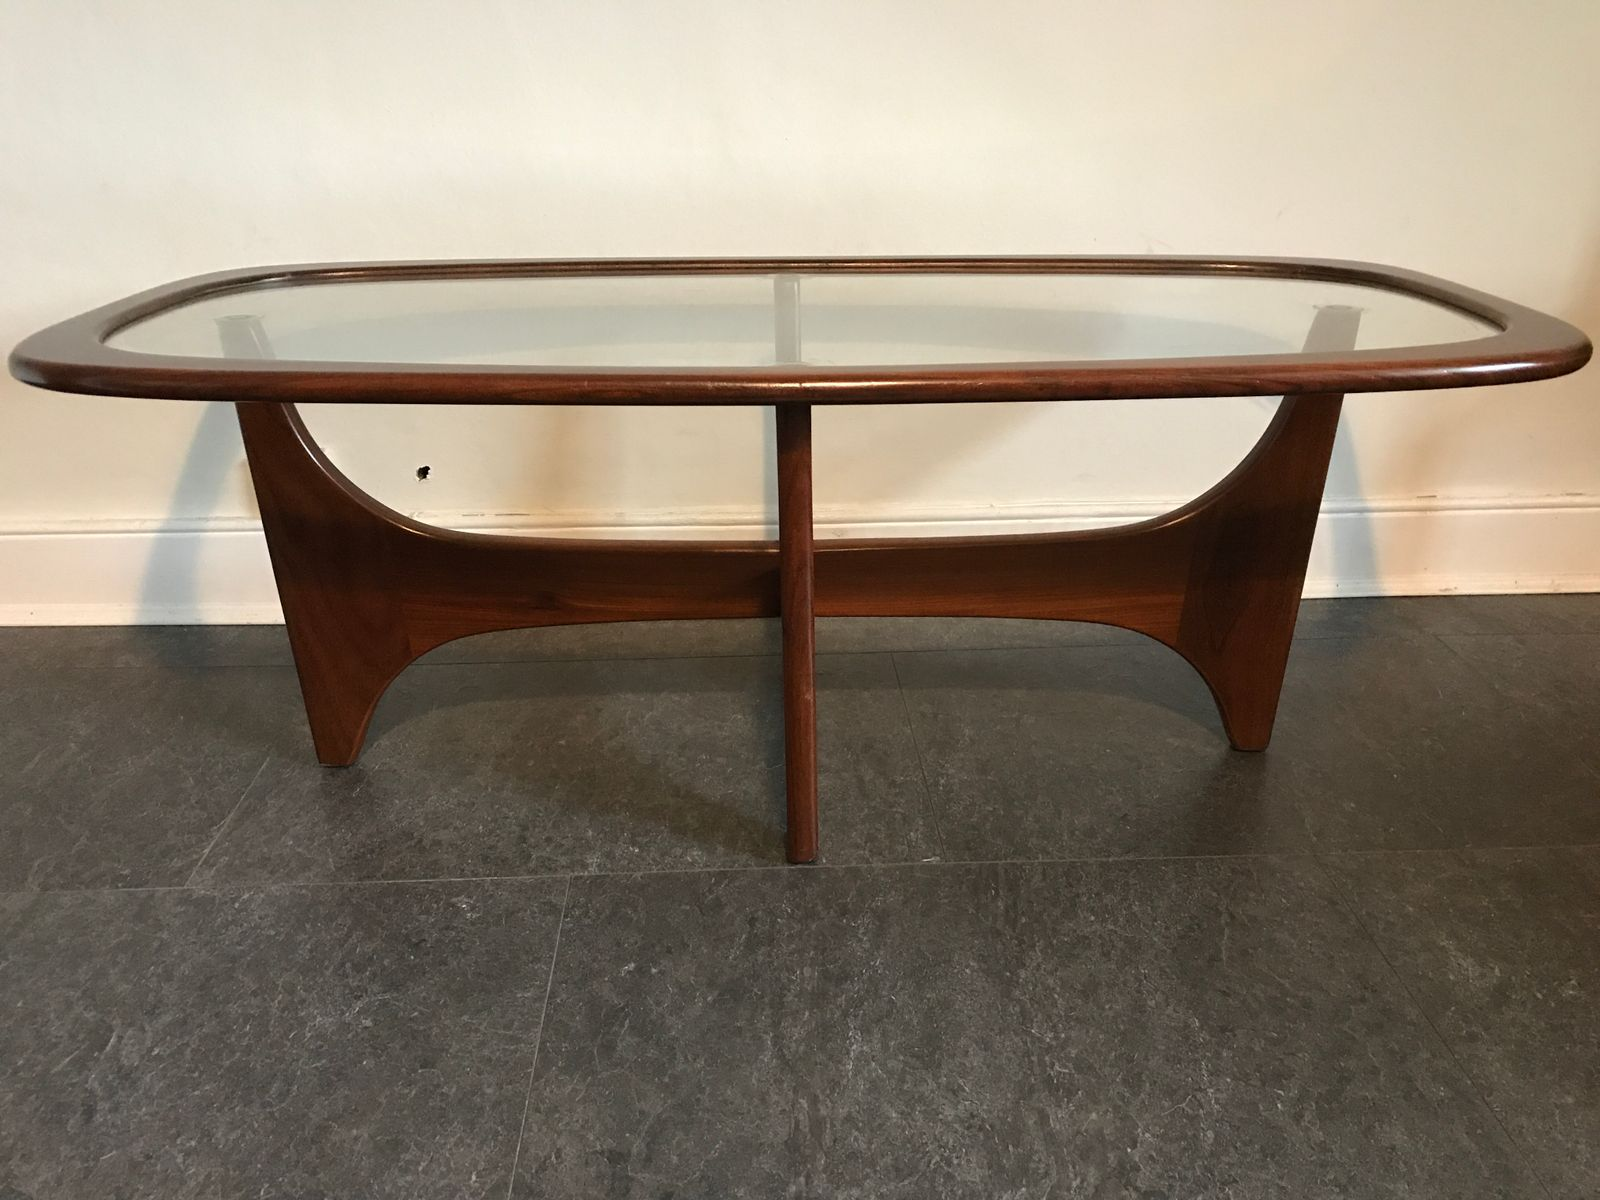 Vintage oval astro coffee table by victor wilkins for g plan vintage oval astro coffee table by victor wilkins for g plan 1960s geotapseo Choice Image